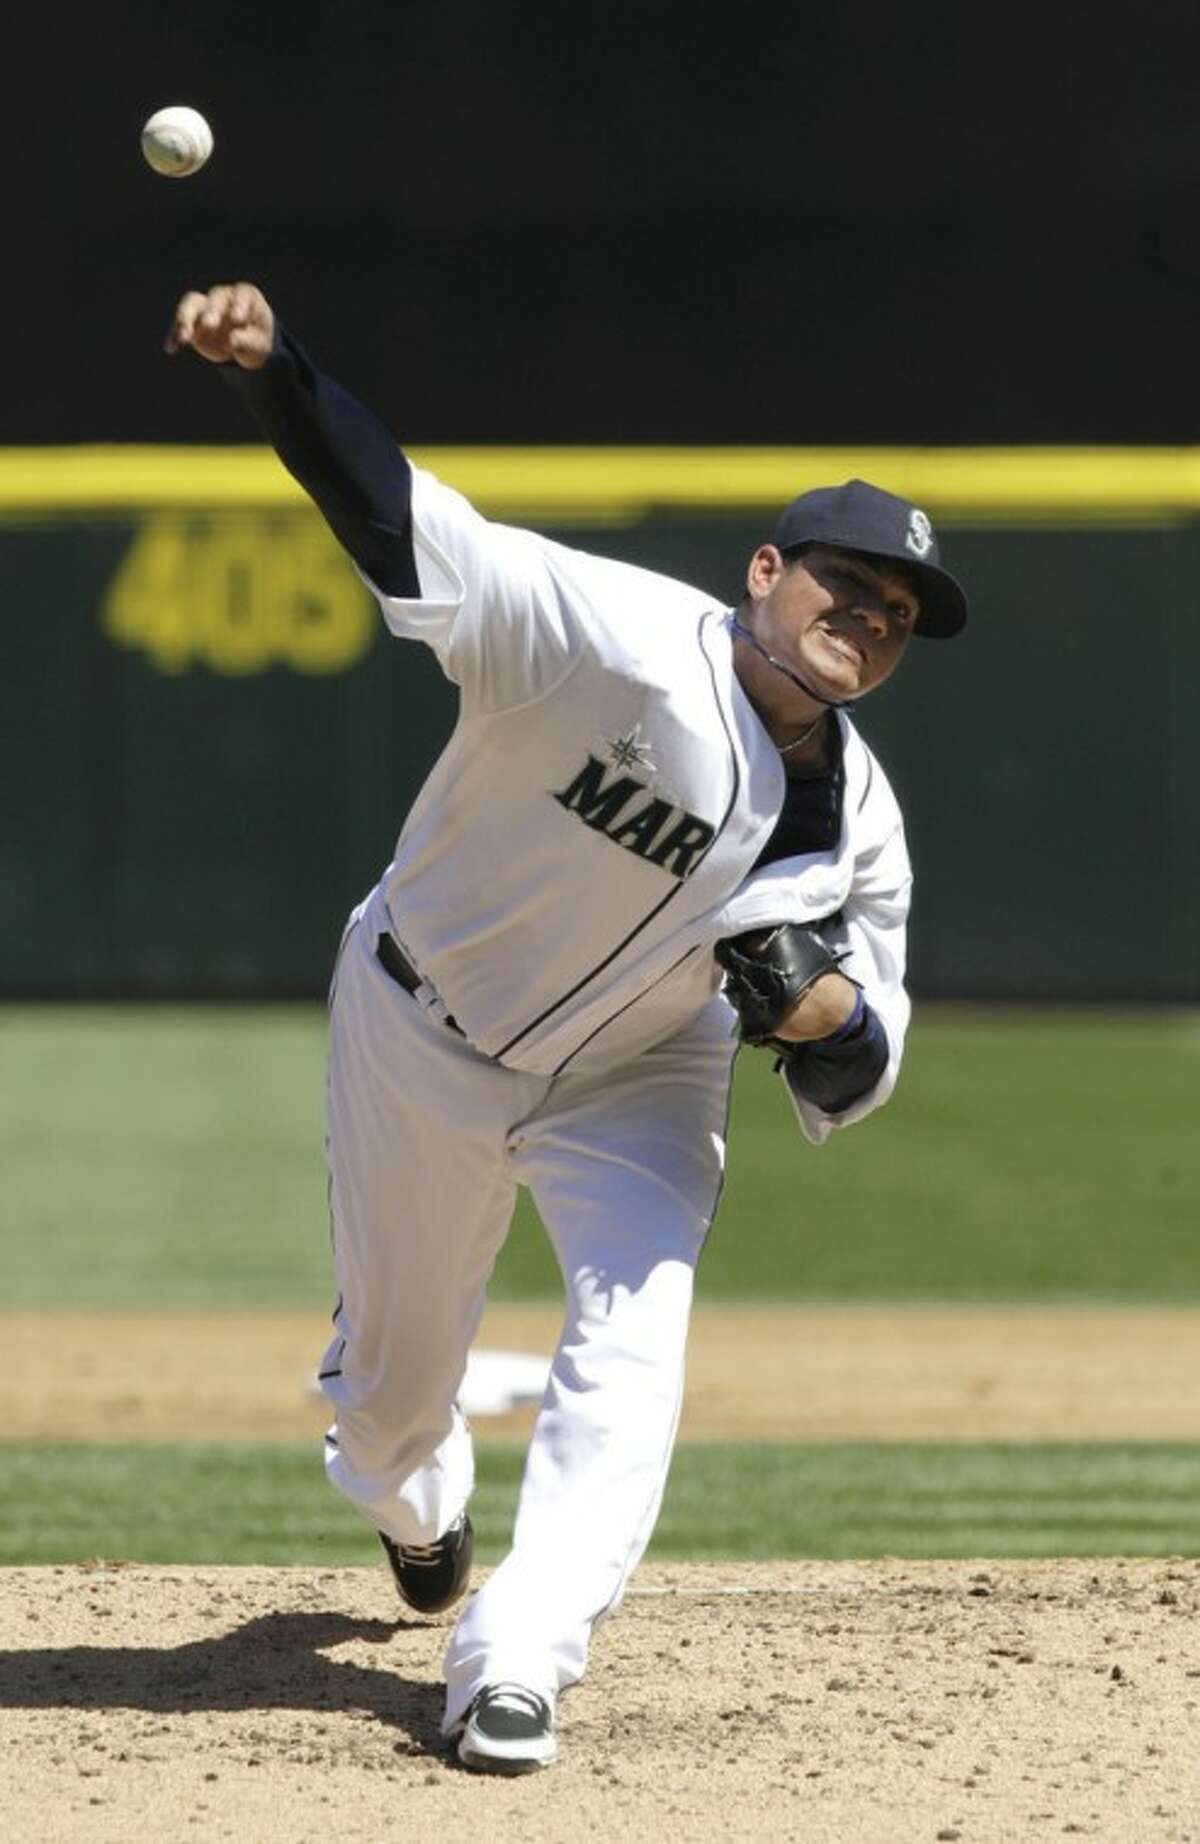 Seattle Mariners starting pitcher Felix Hernandez throws to a Tampa Bay Rays batter in the third inning of a baseball game, Wednesday, Aug. 15, 2012, in Seattle. (AP Photo/Ted S. Warren)